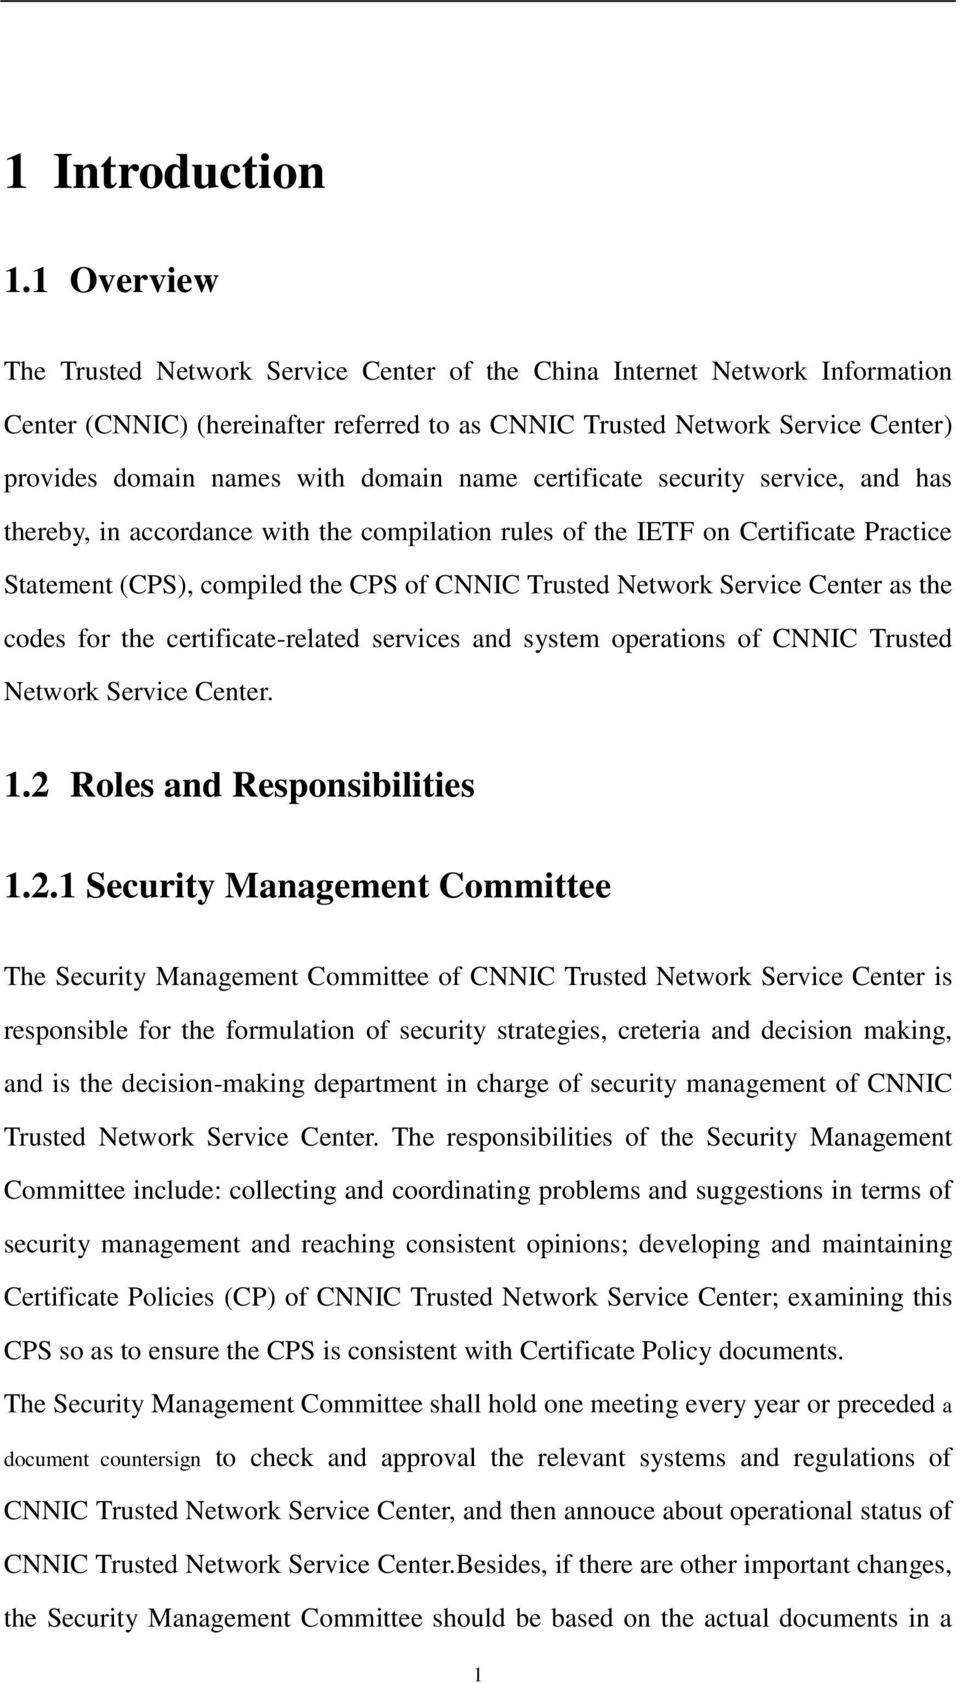 domain name certificate security service, and has thereby, in accordance with the compilation rules of the IETF on Certificate Practice Statement (CPS), compiled the CPS of CNNIC Trusted Network